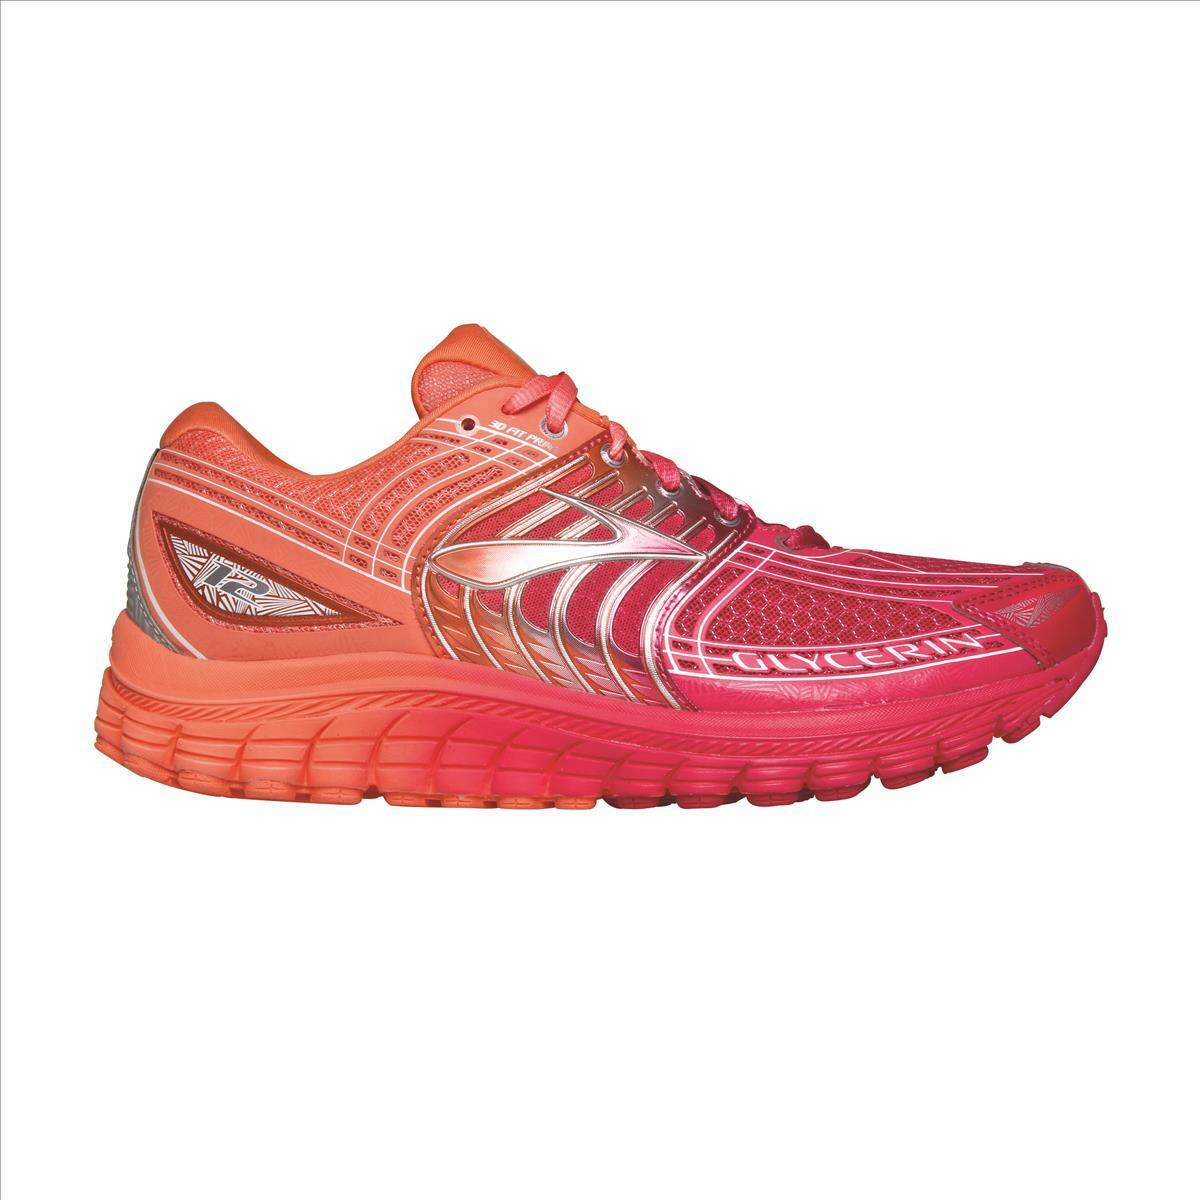 Brooks Glycerin 12 Womens Runner (B) (697) + Free Aus Delivery